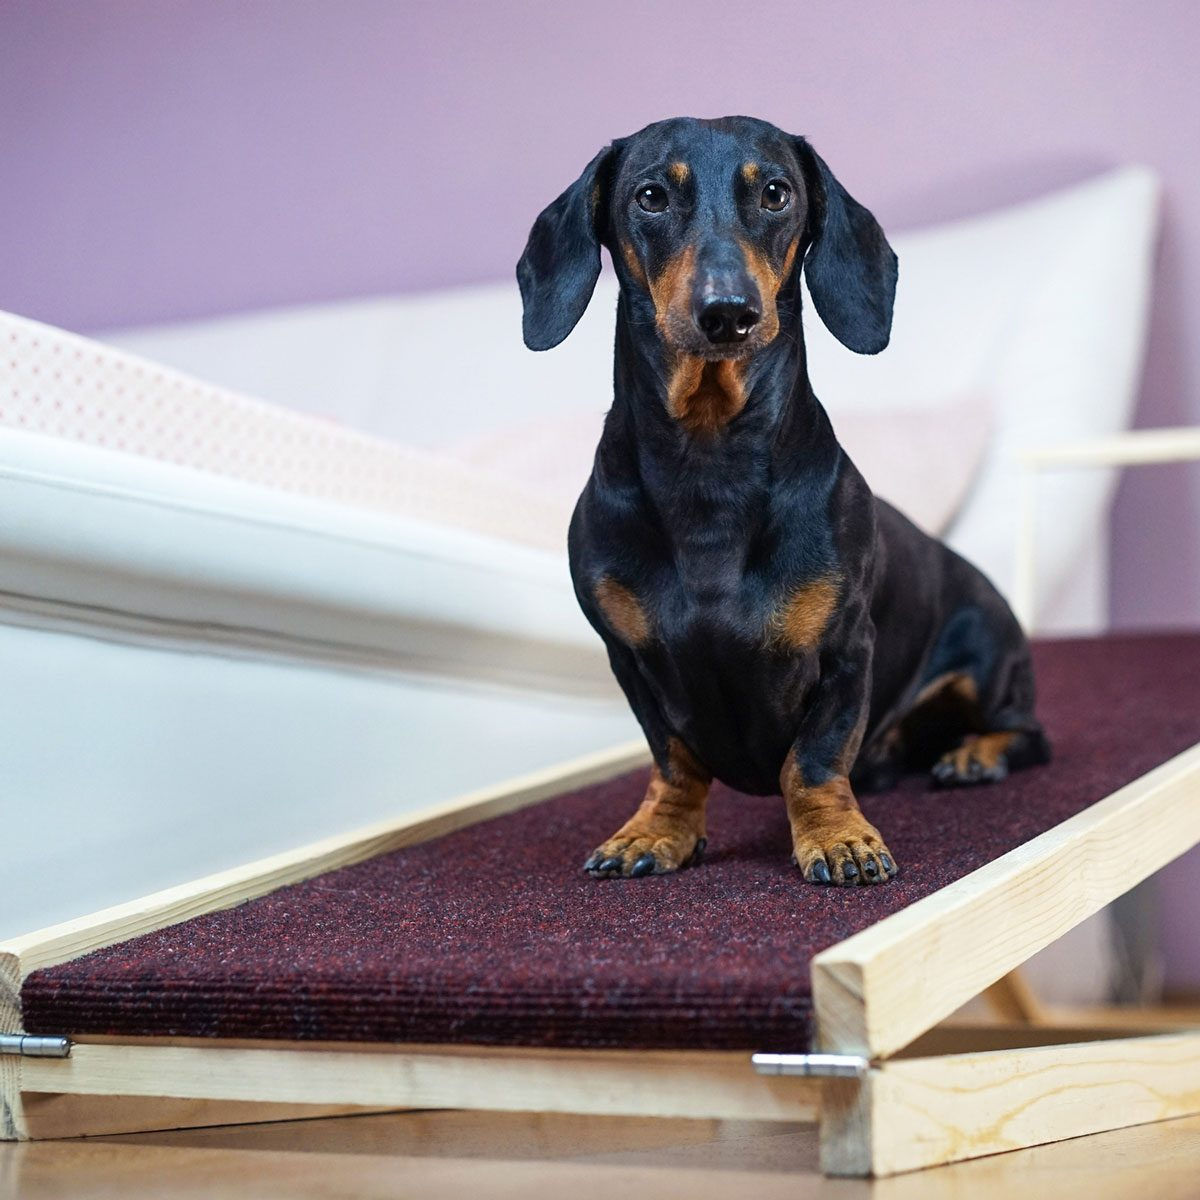 Dog on a pet ramp